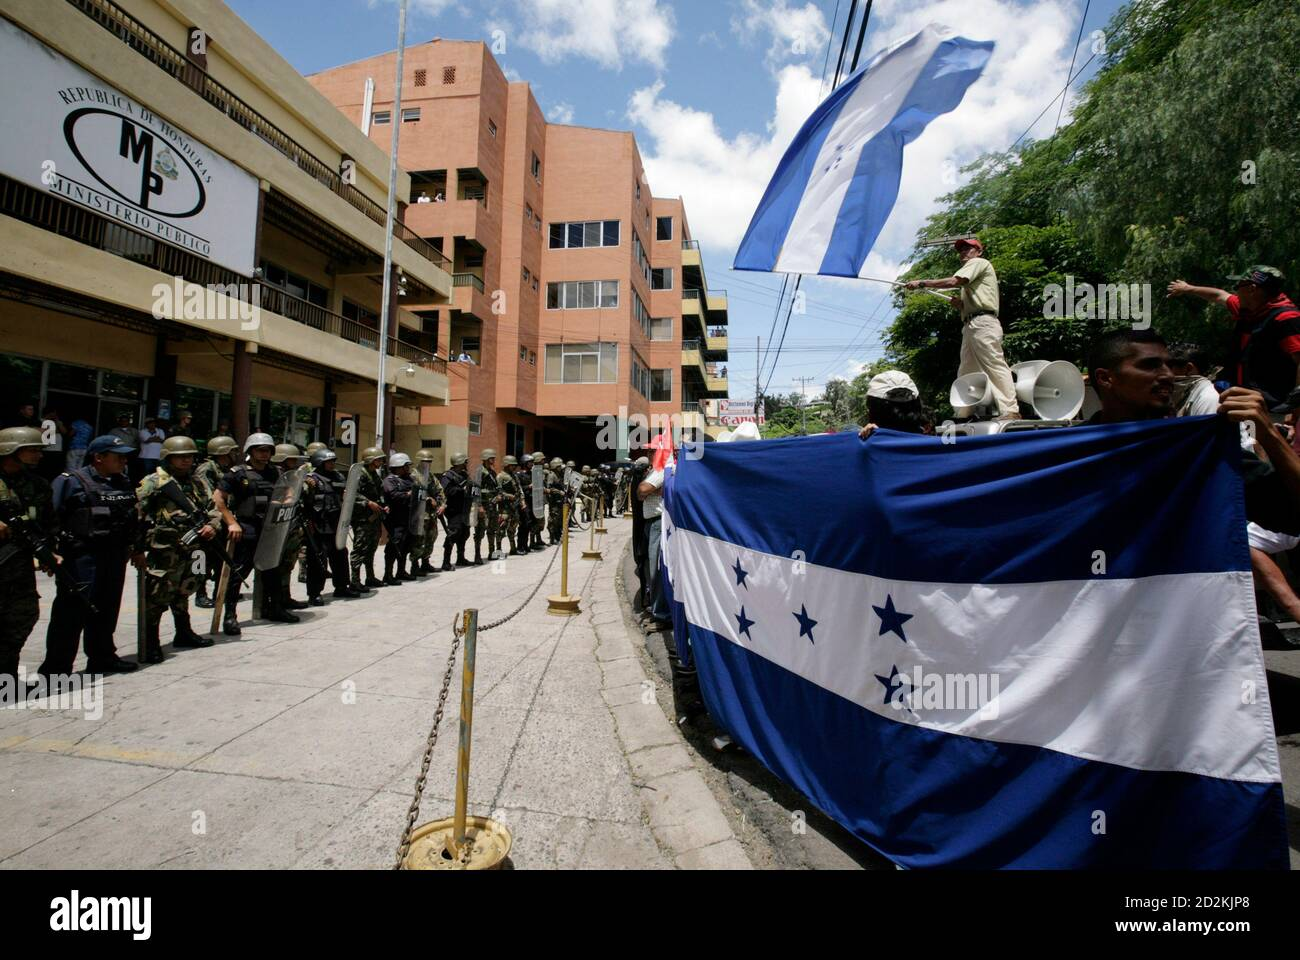 Supporters (R) of Honduras' ousted President Manuel Zelaya protest in front of the Public Ministry building in Tegucigalpa July 7, 2009. Ousted Honduran President Manuel Zelaya said on Tuesday he accepted the mediation of Costa Rican President Oscar Arias to try to solve his country's political crisis following the June 28 coup that ousted him. REUTERS/Oswaldo Rivas (HONDURAS POLITICS CONFLICT MILITARY) Stock Photo